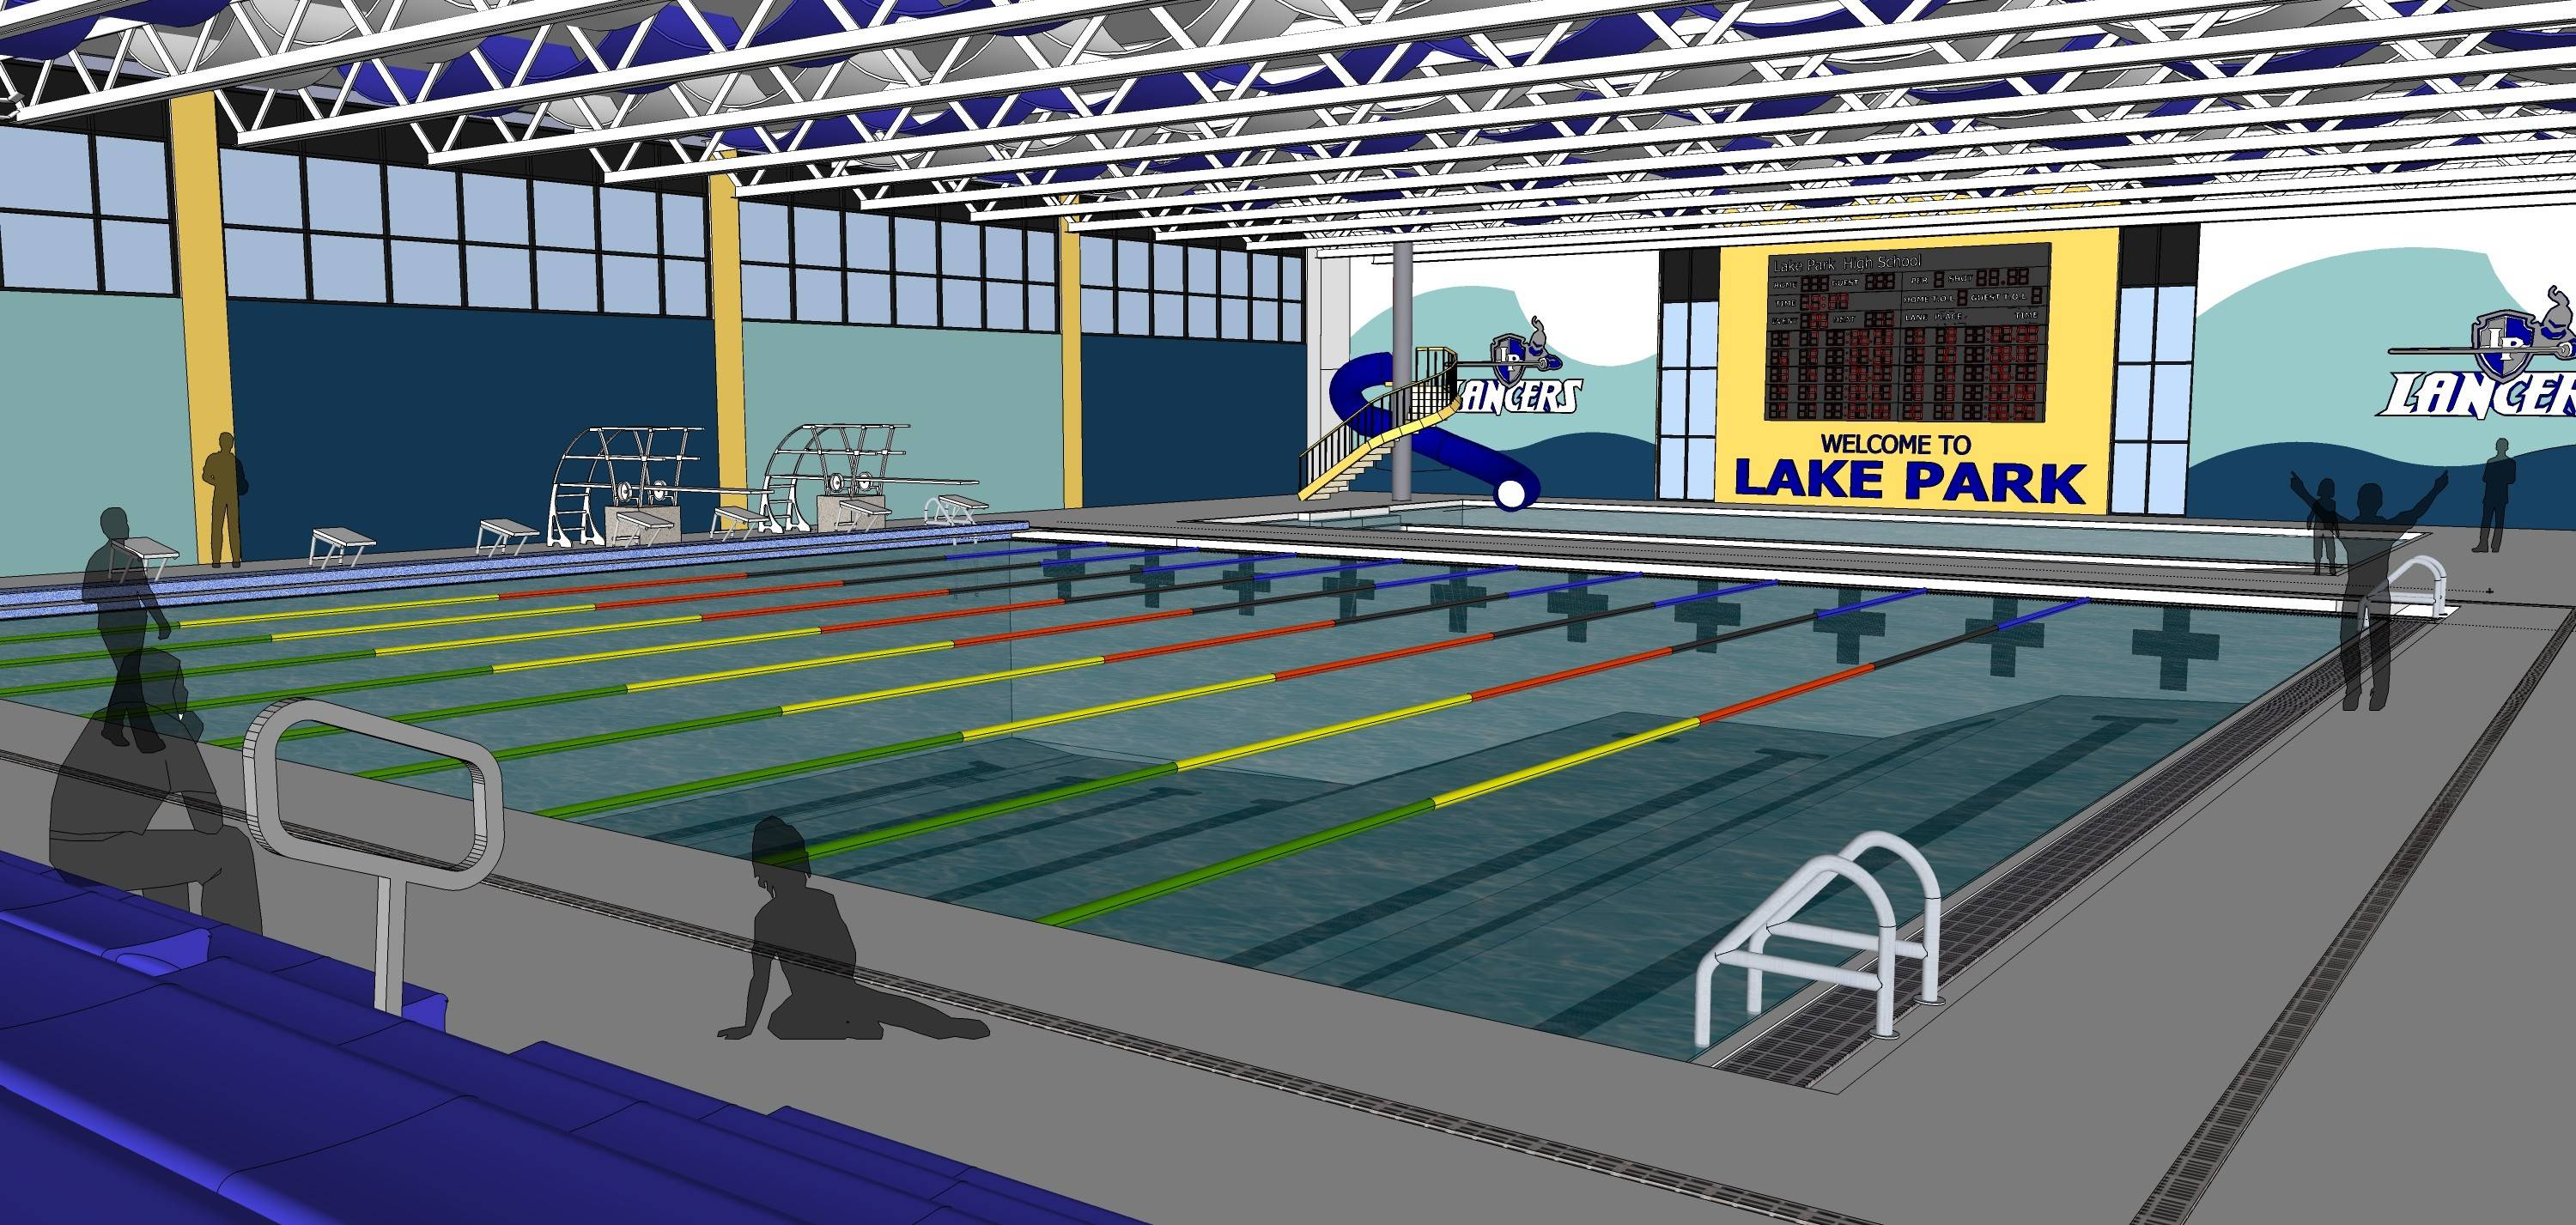 Roughly 57 percent of voters in Lake Park High School District 108 chose not to allow the district to borrow $8.5 million and raise taxes to bring in an additional $390,000 a year to build and operate an indoor aquatic center. This is the third time voters have failed to approve proposals that could have brought a pool to the Roselle school.